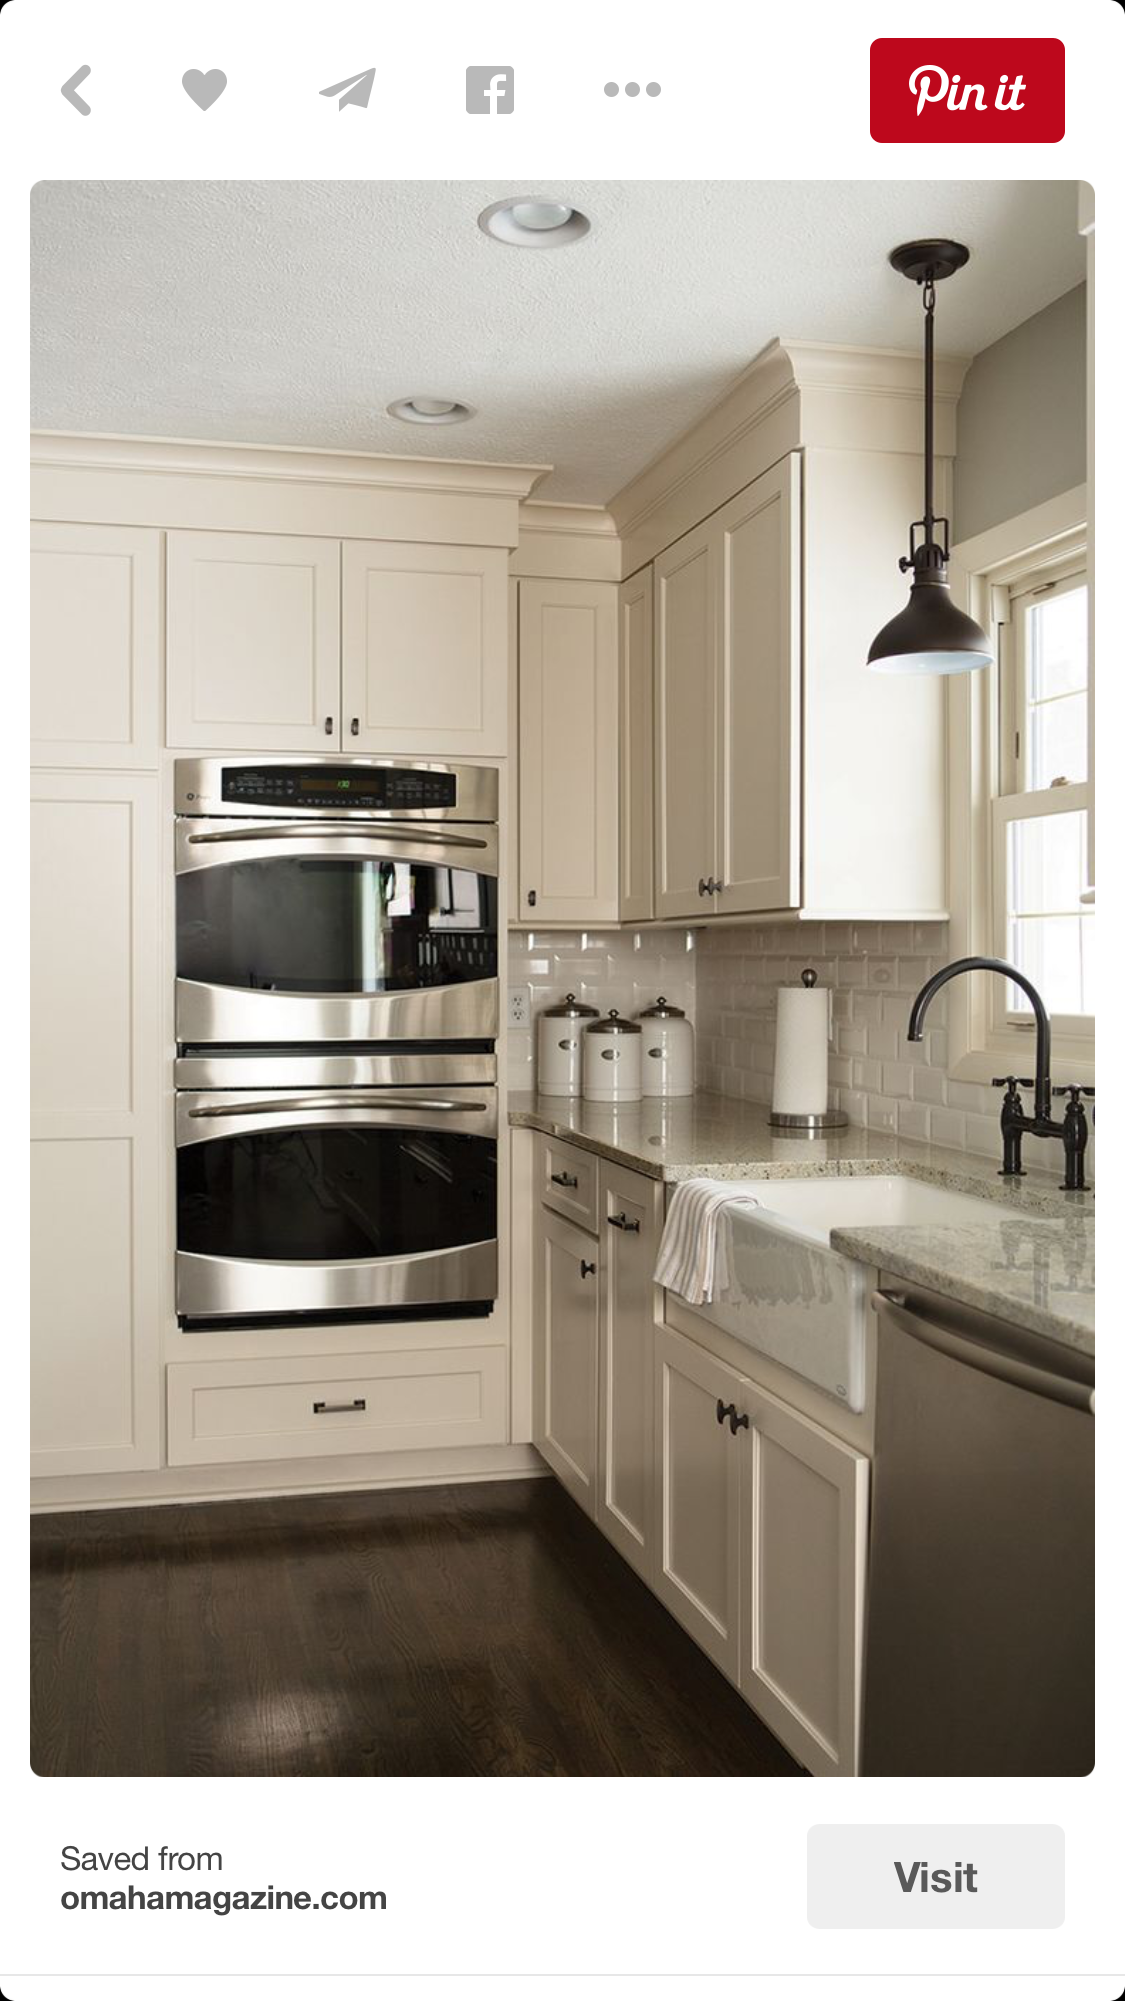 Oil Rubbed Bronze Finishes With White Cabinets And